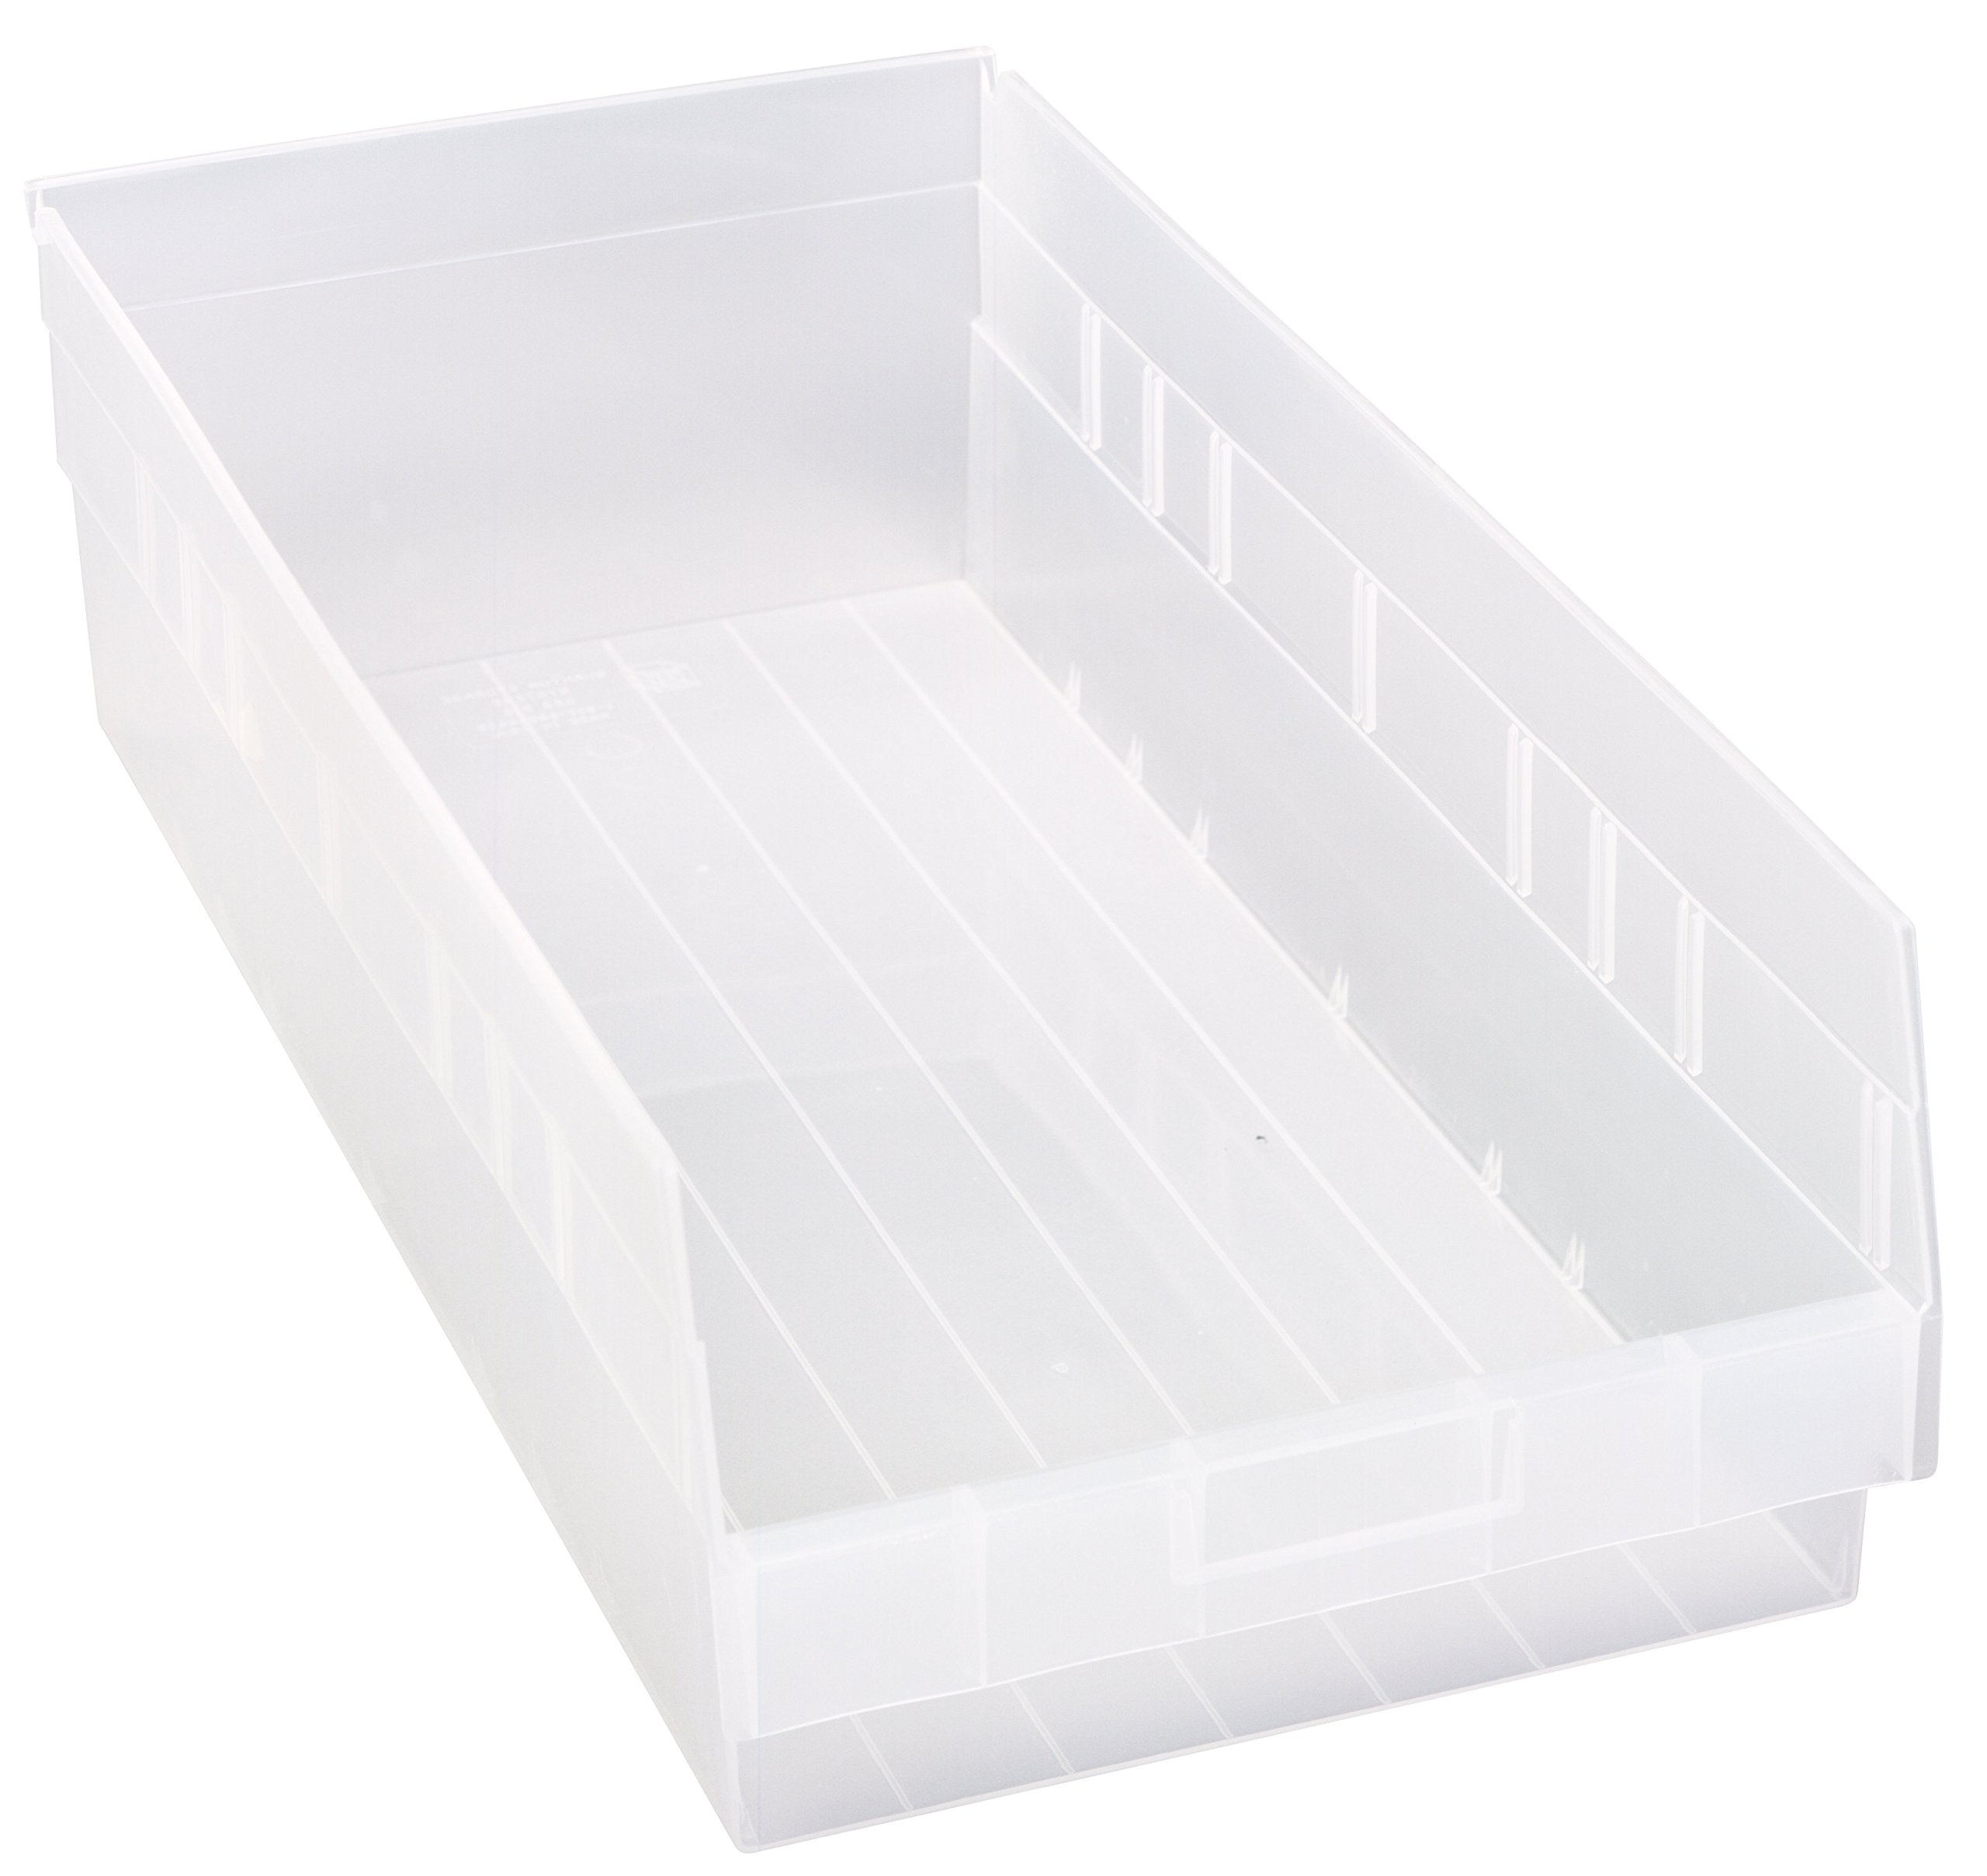 Quantum QSB216CL Store More Shelf Bin, 23-5/8'' Length x 11-1/8'' Width x 6'' Height, Clear, Pack of 6 by Quantum